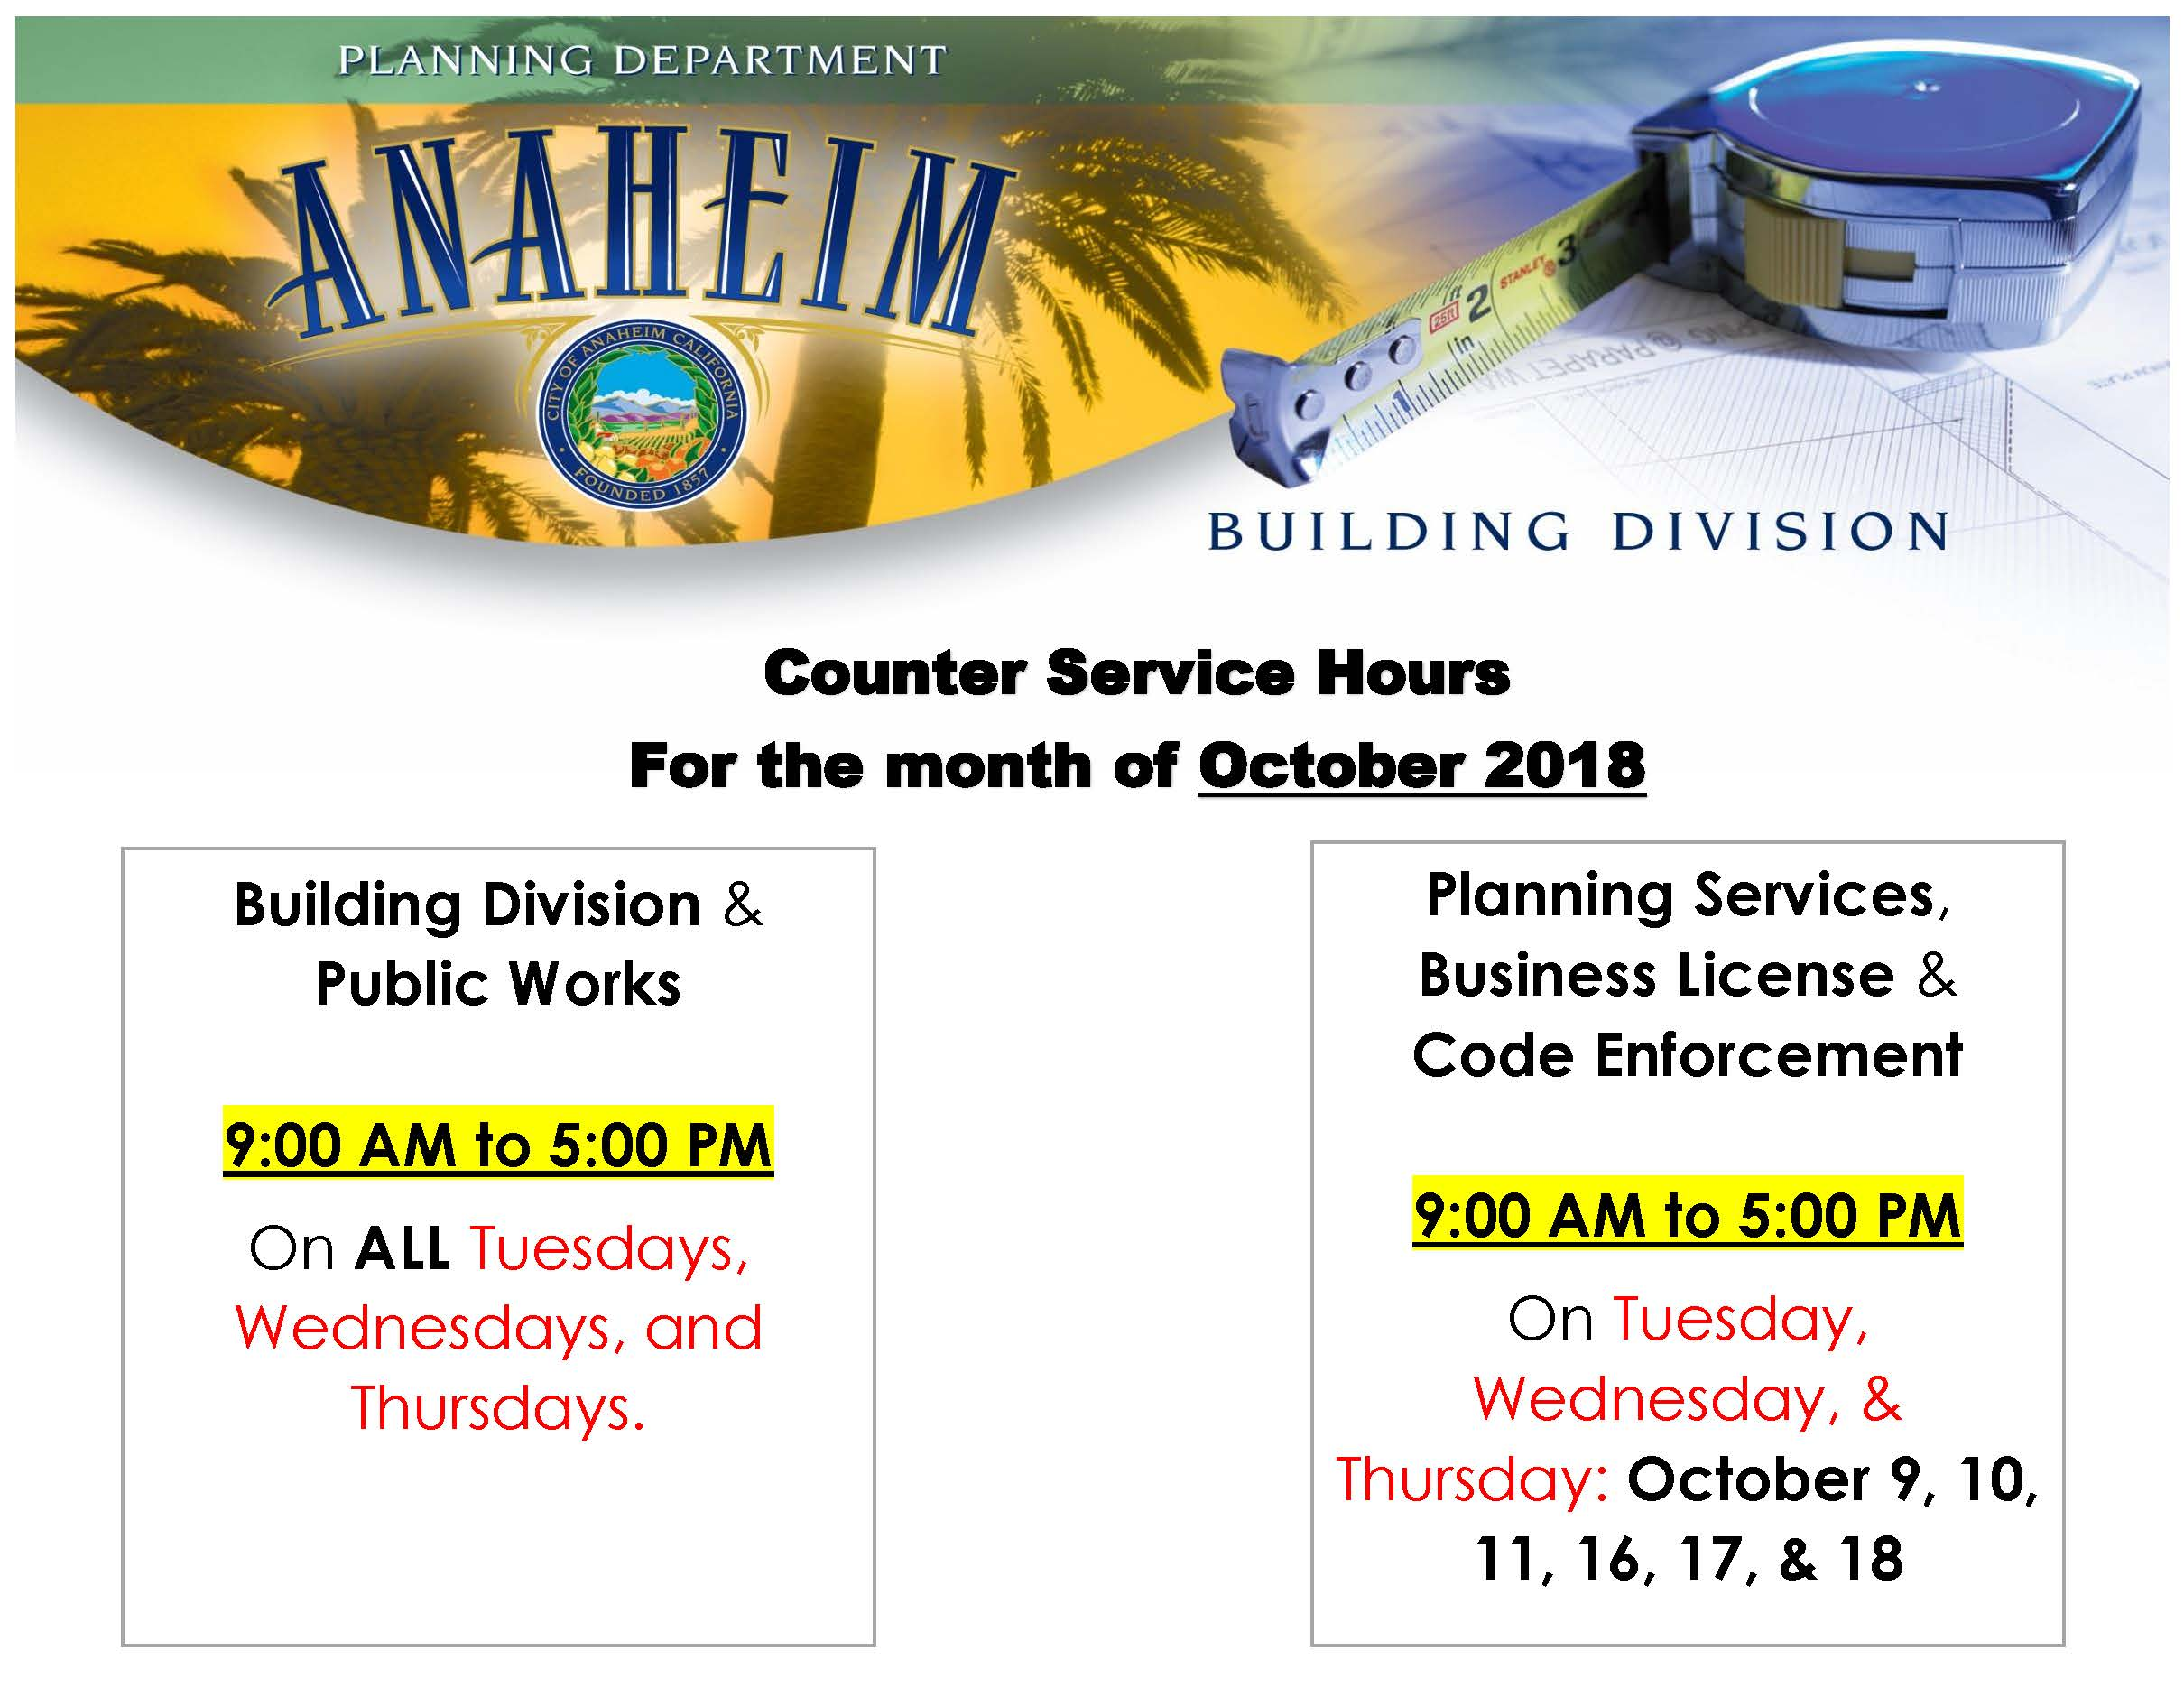 Counter Service Hours